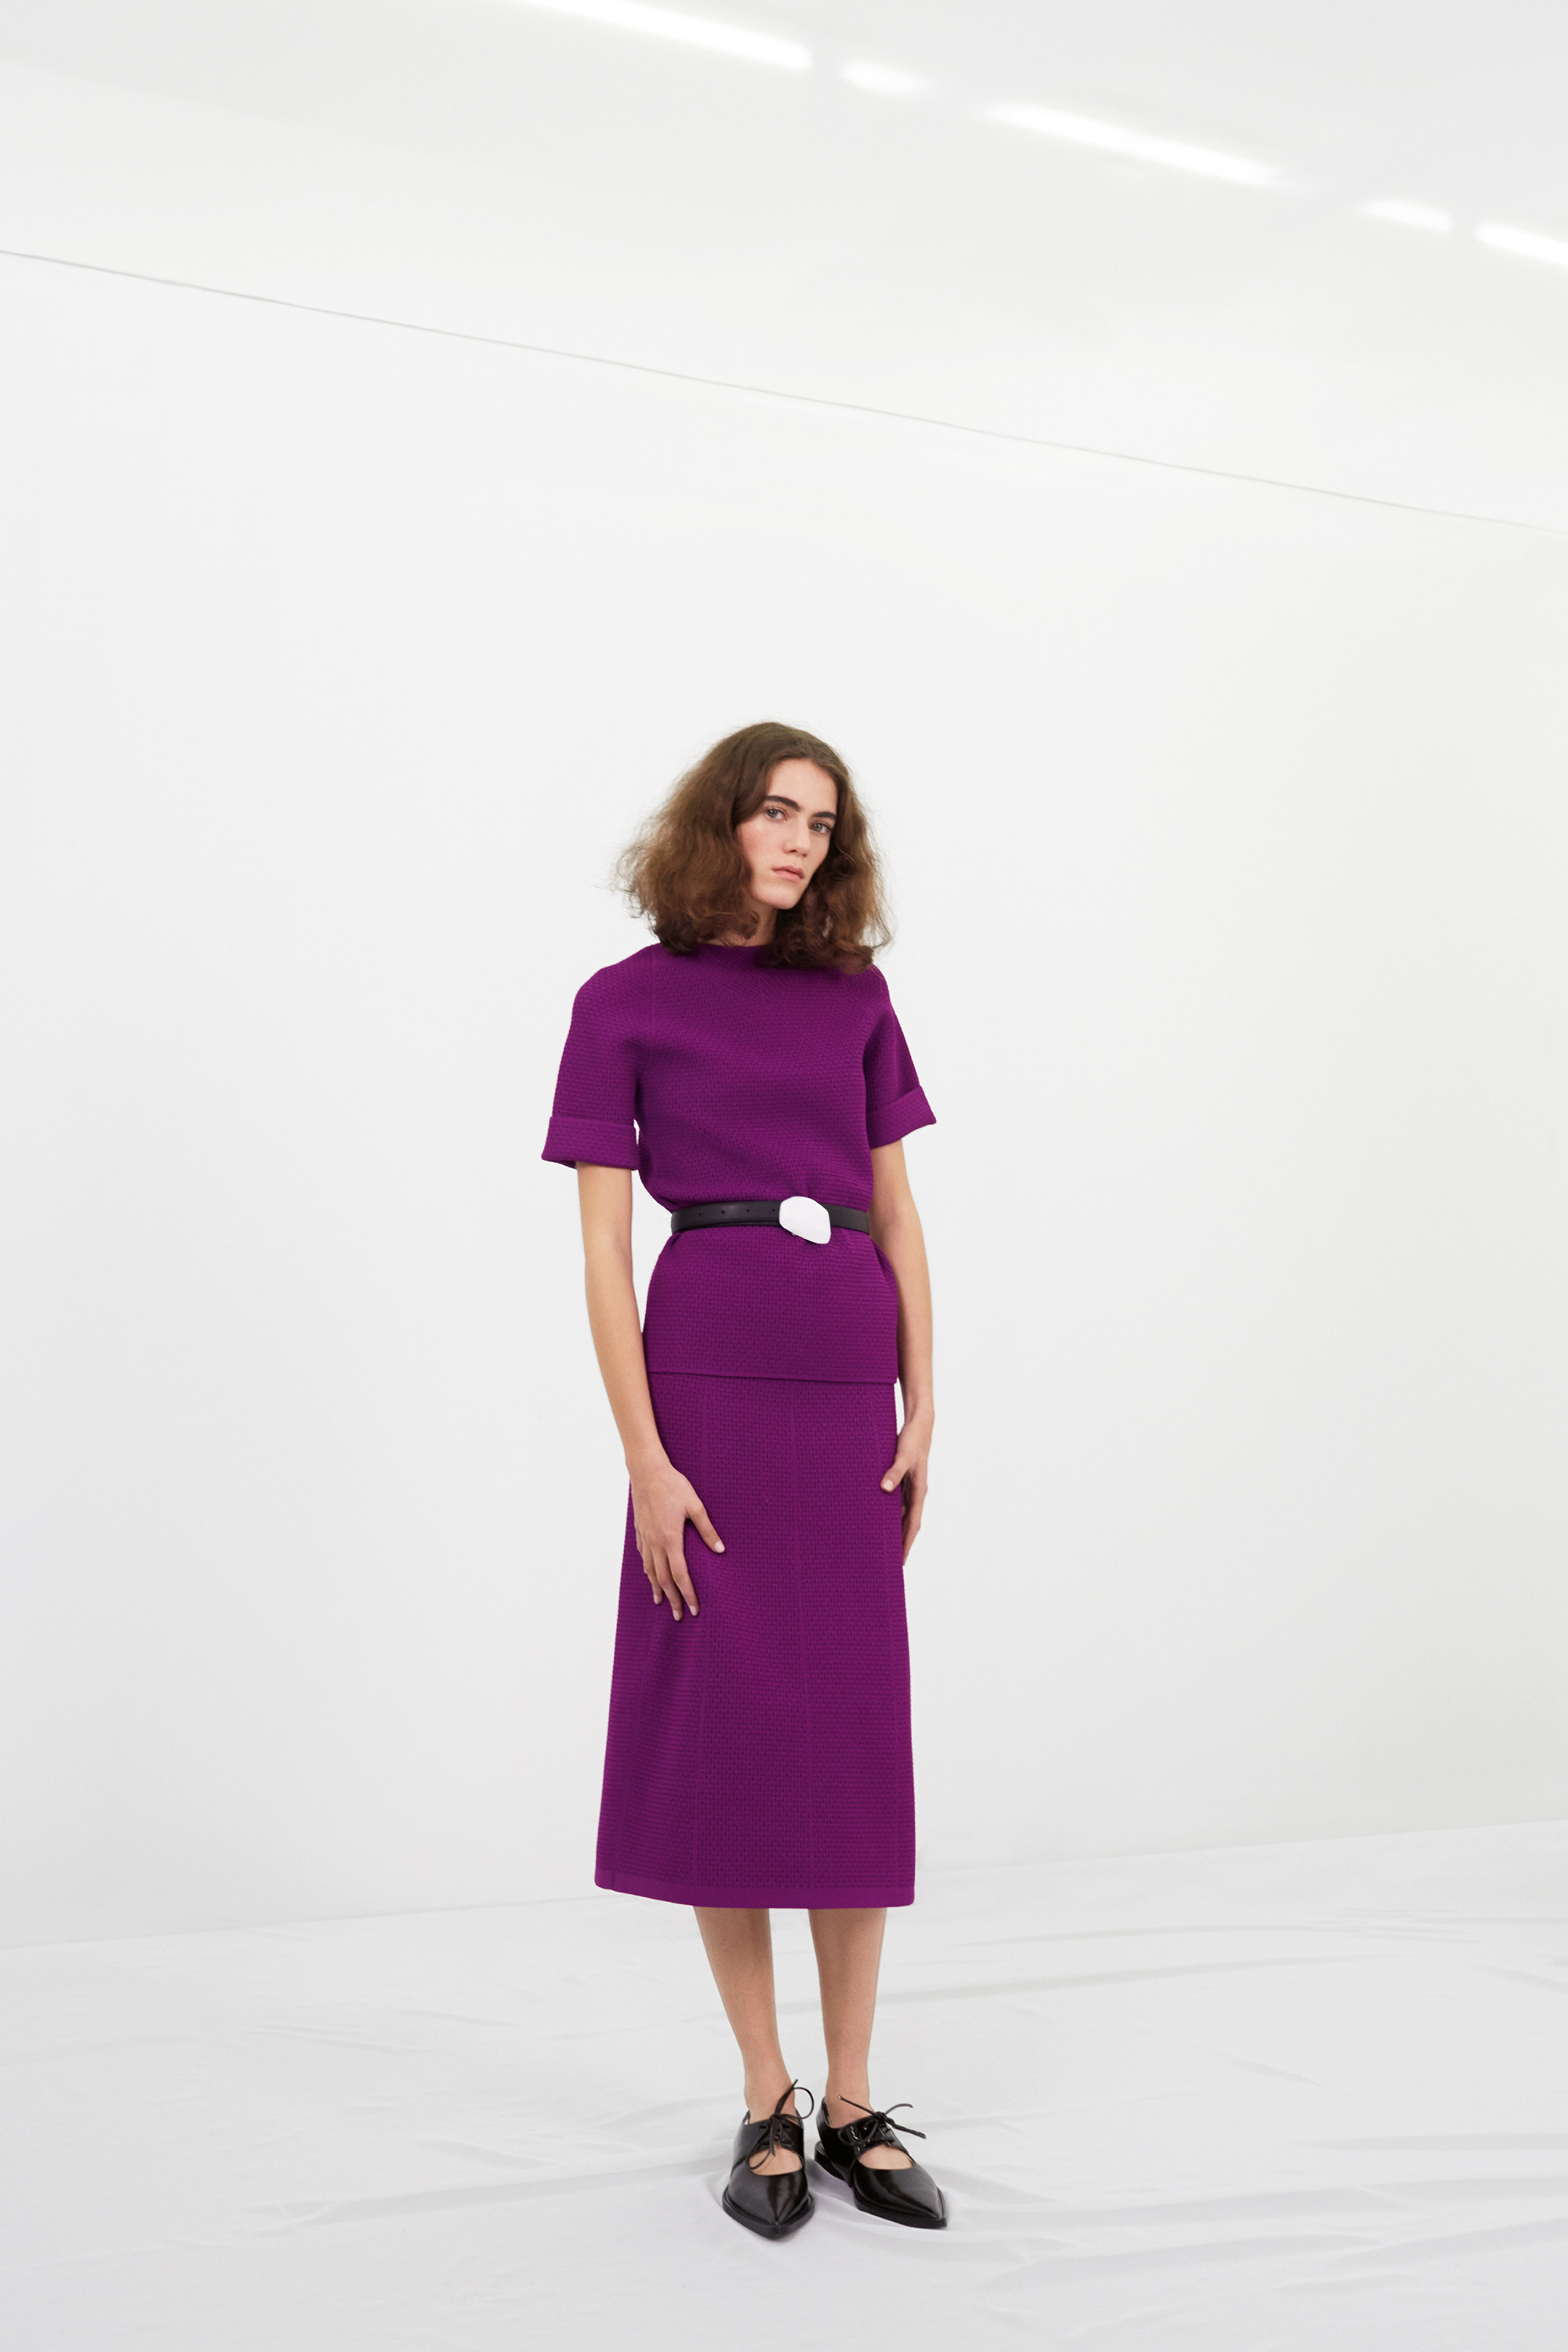 victoria-beckham-pre-fall-2016-lookbook-07.jpg